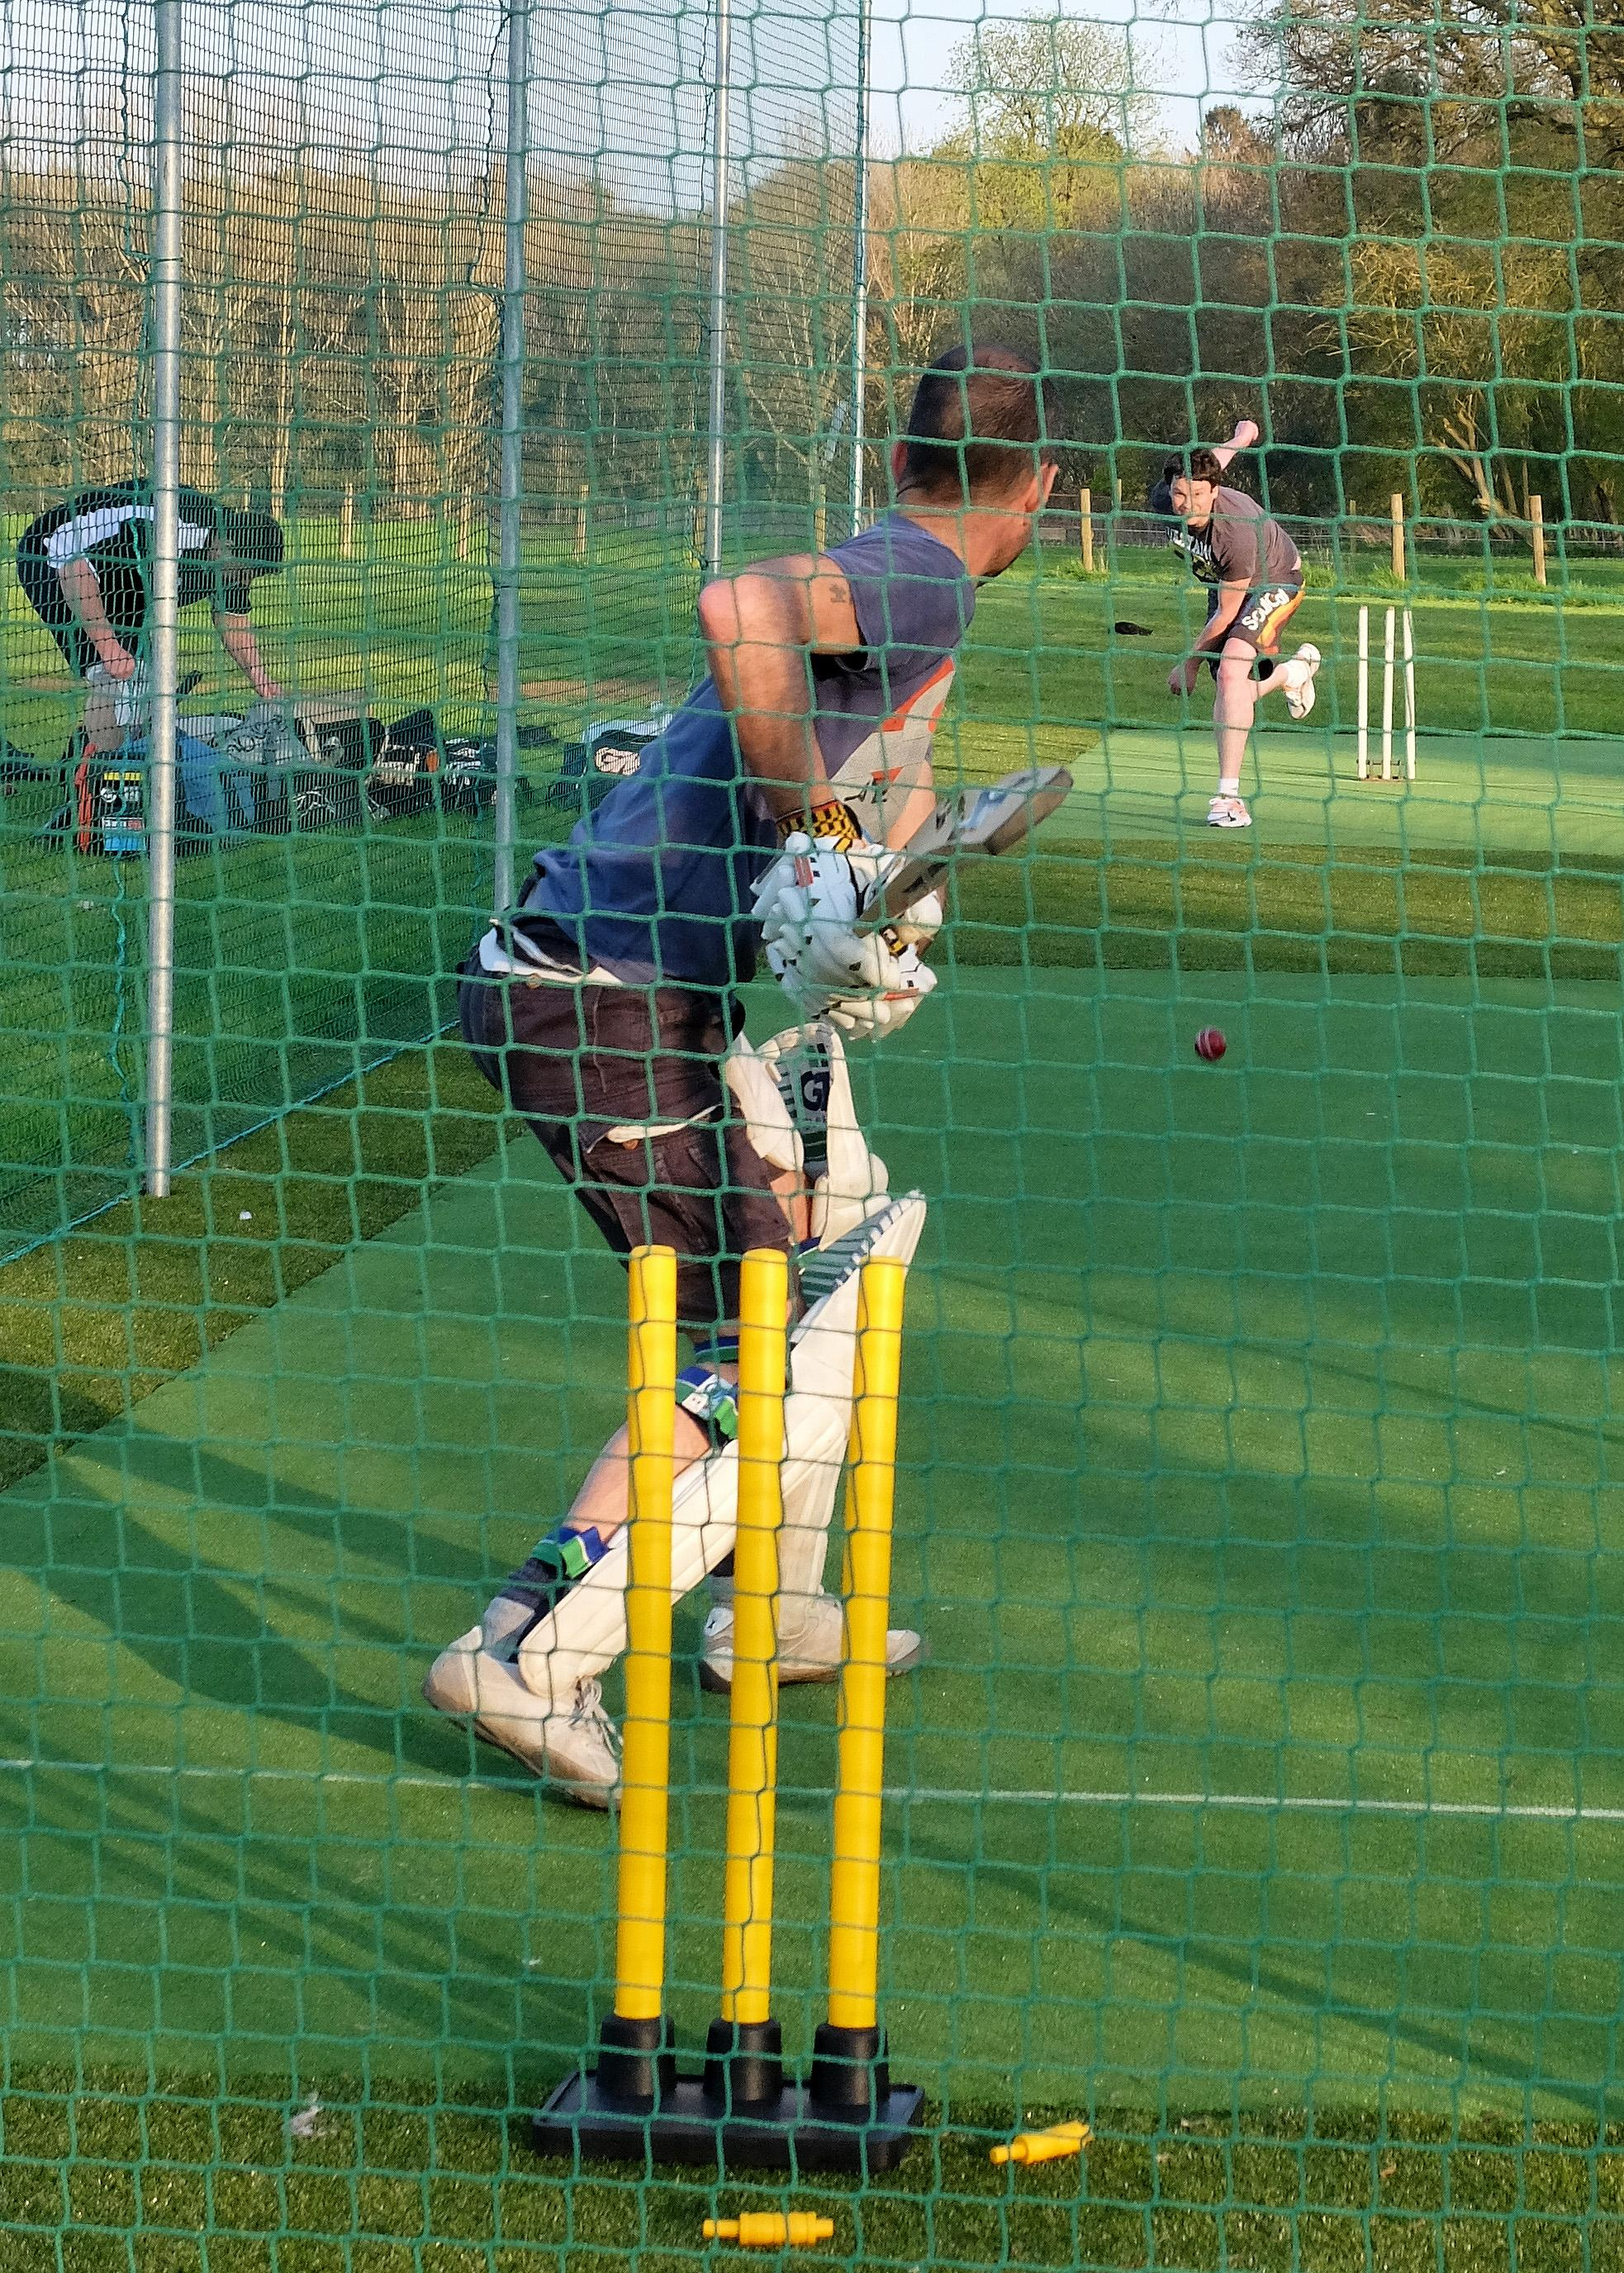 Sherston Magna Cricket Club to unveil new £23,000 training area next month